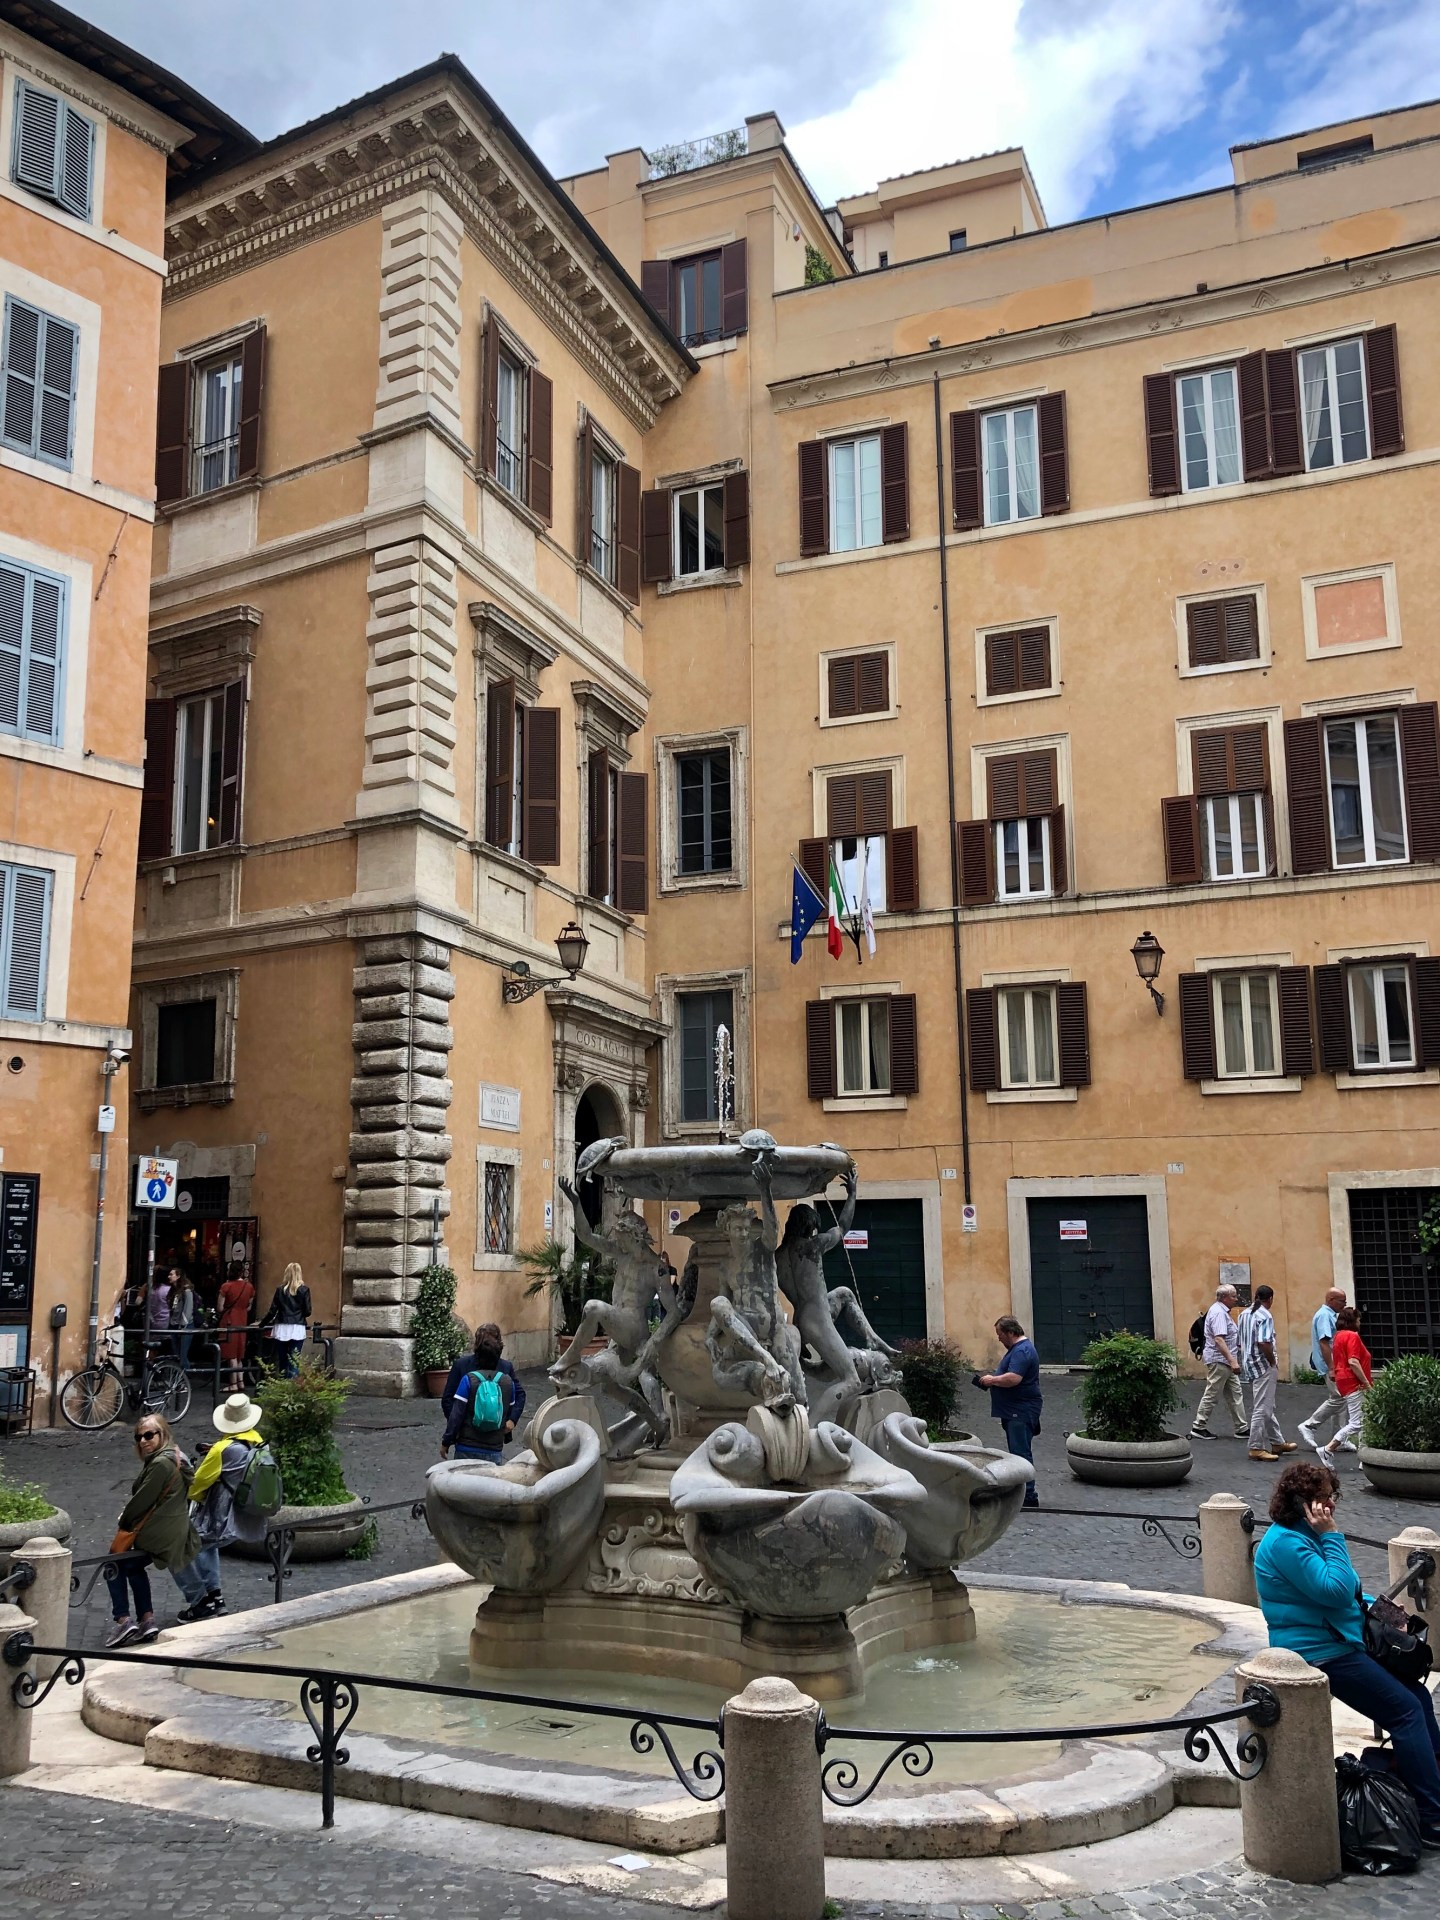 The Turtle fountain is in Piazza Mattei and was one of many fountains in Rome it is also said to be the first drinkable Jewish fountain in the area.